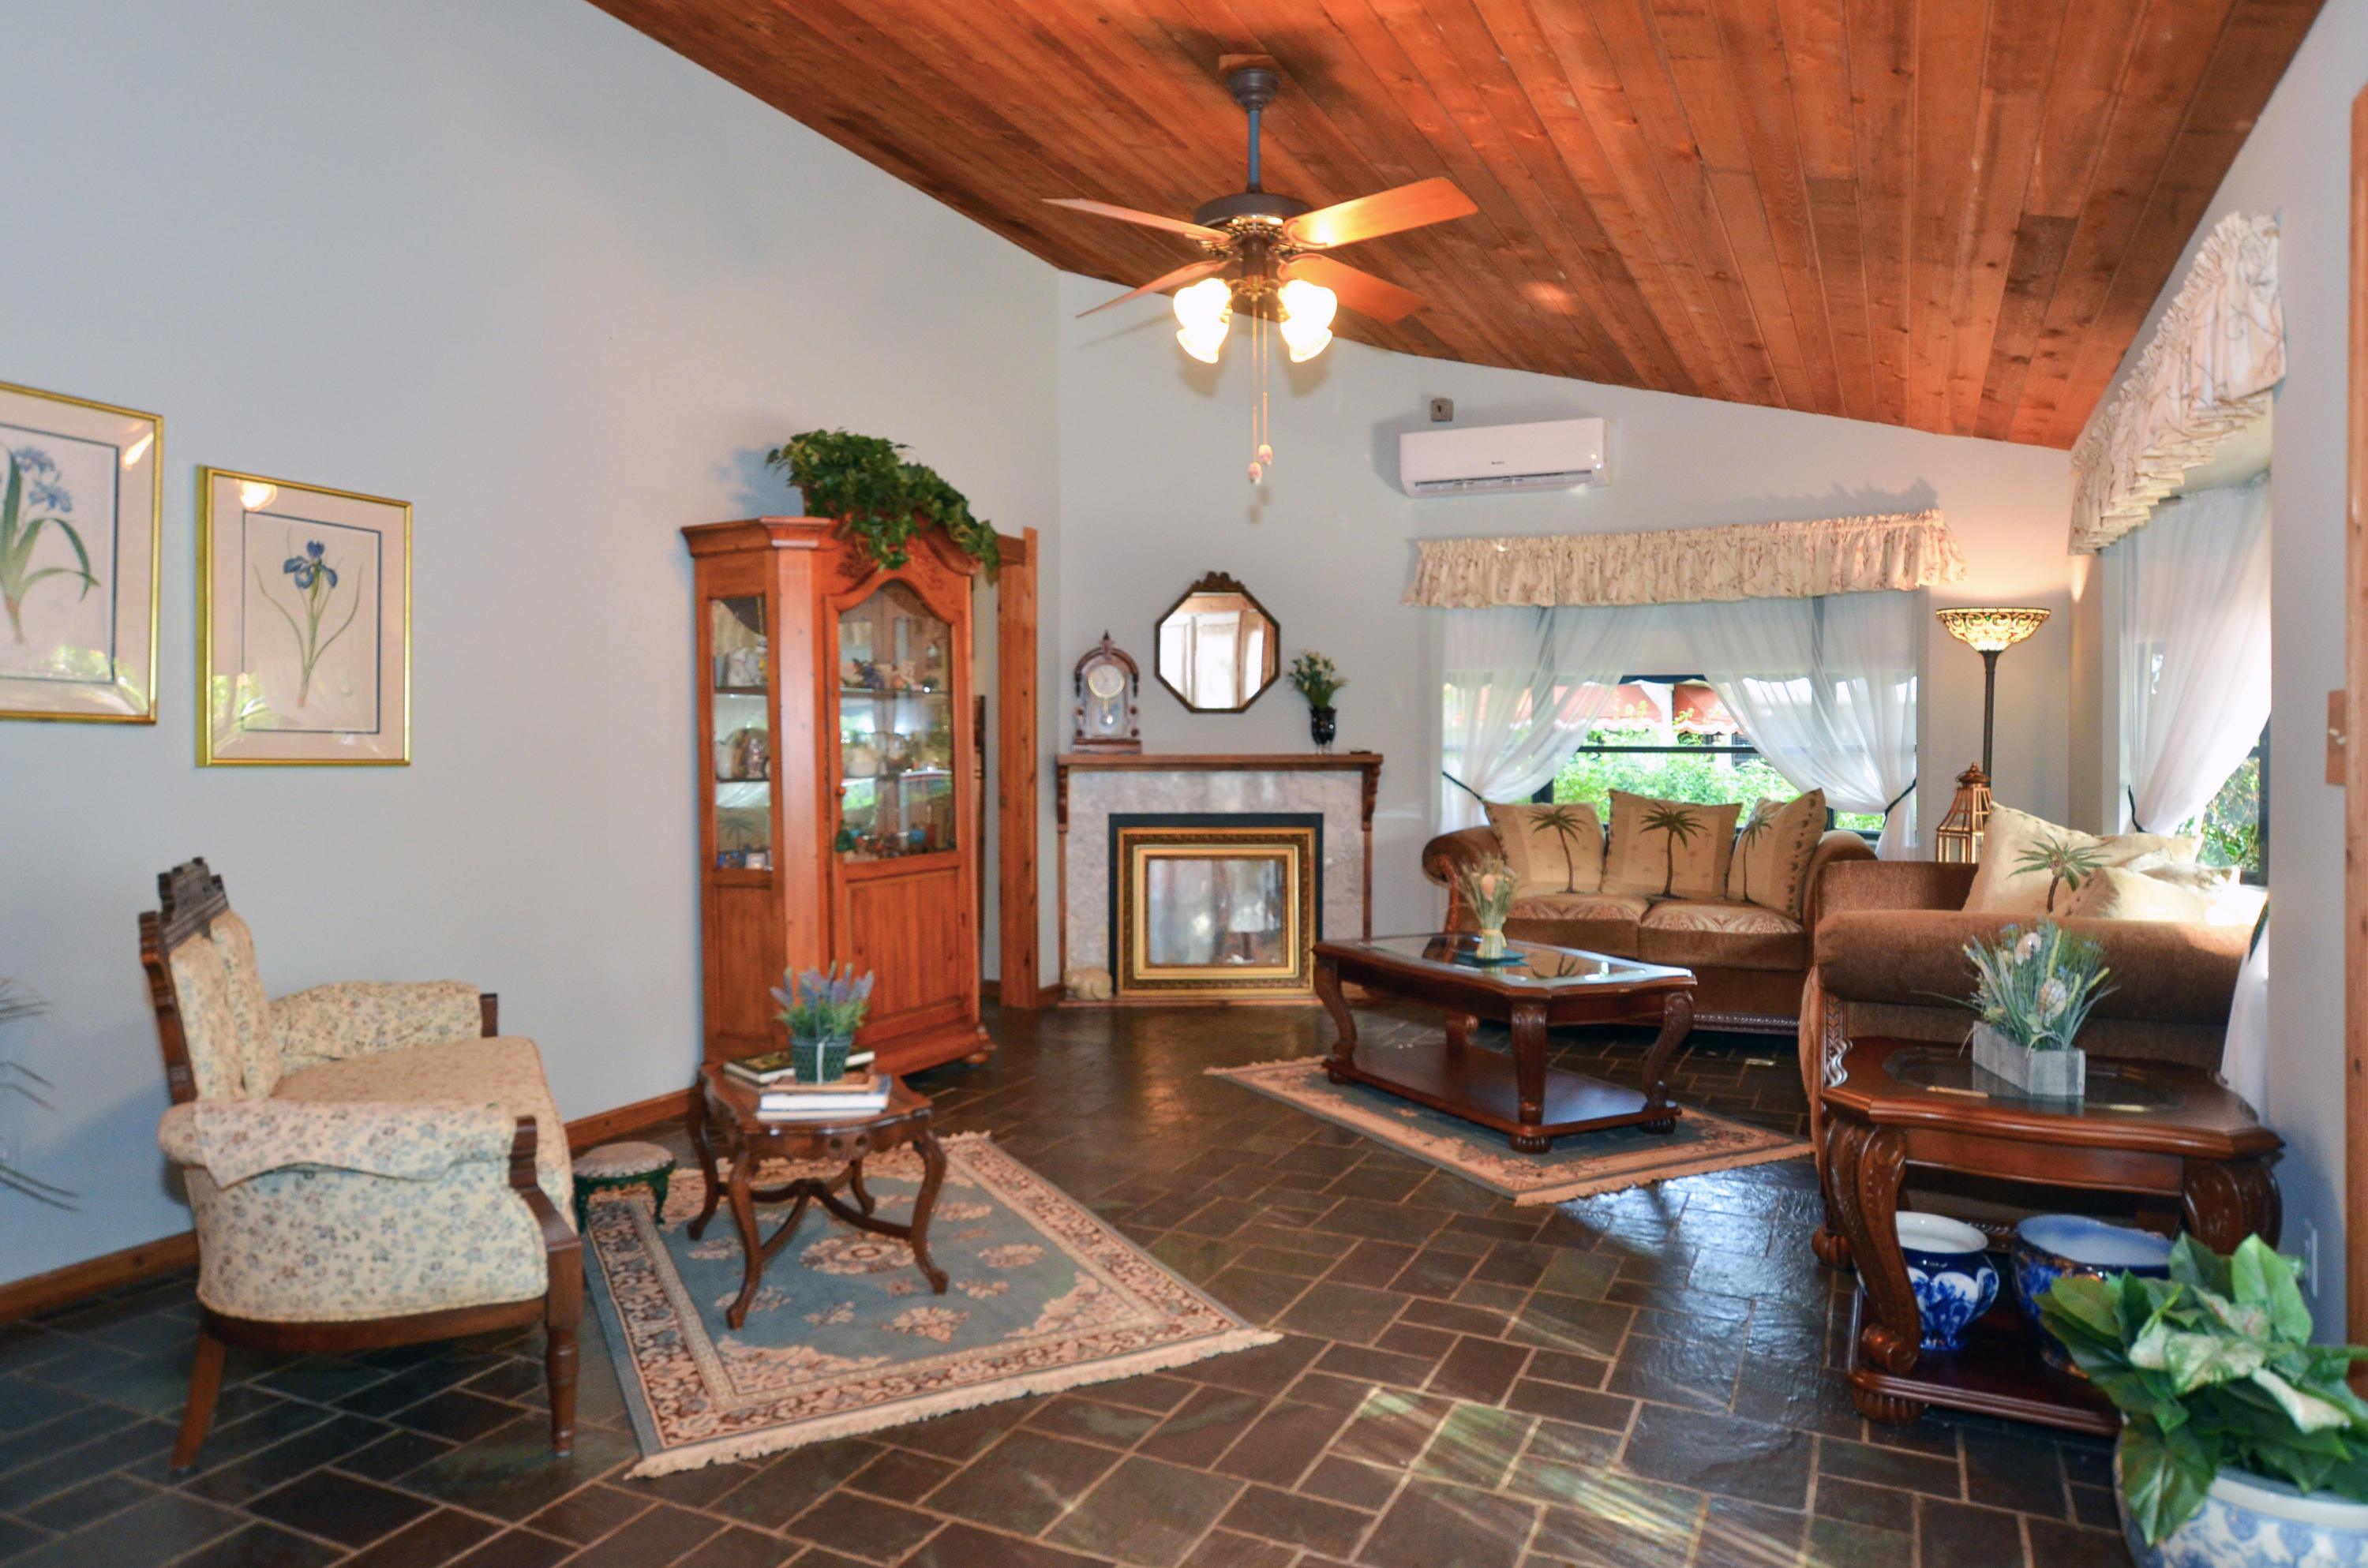 POINT ST LUCIE REALTY